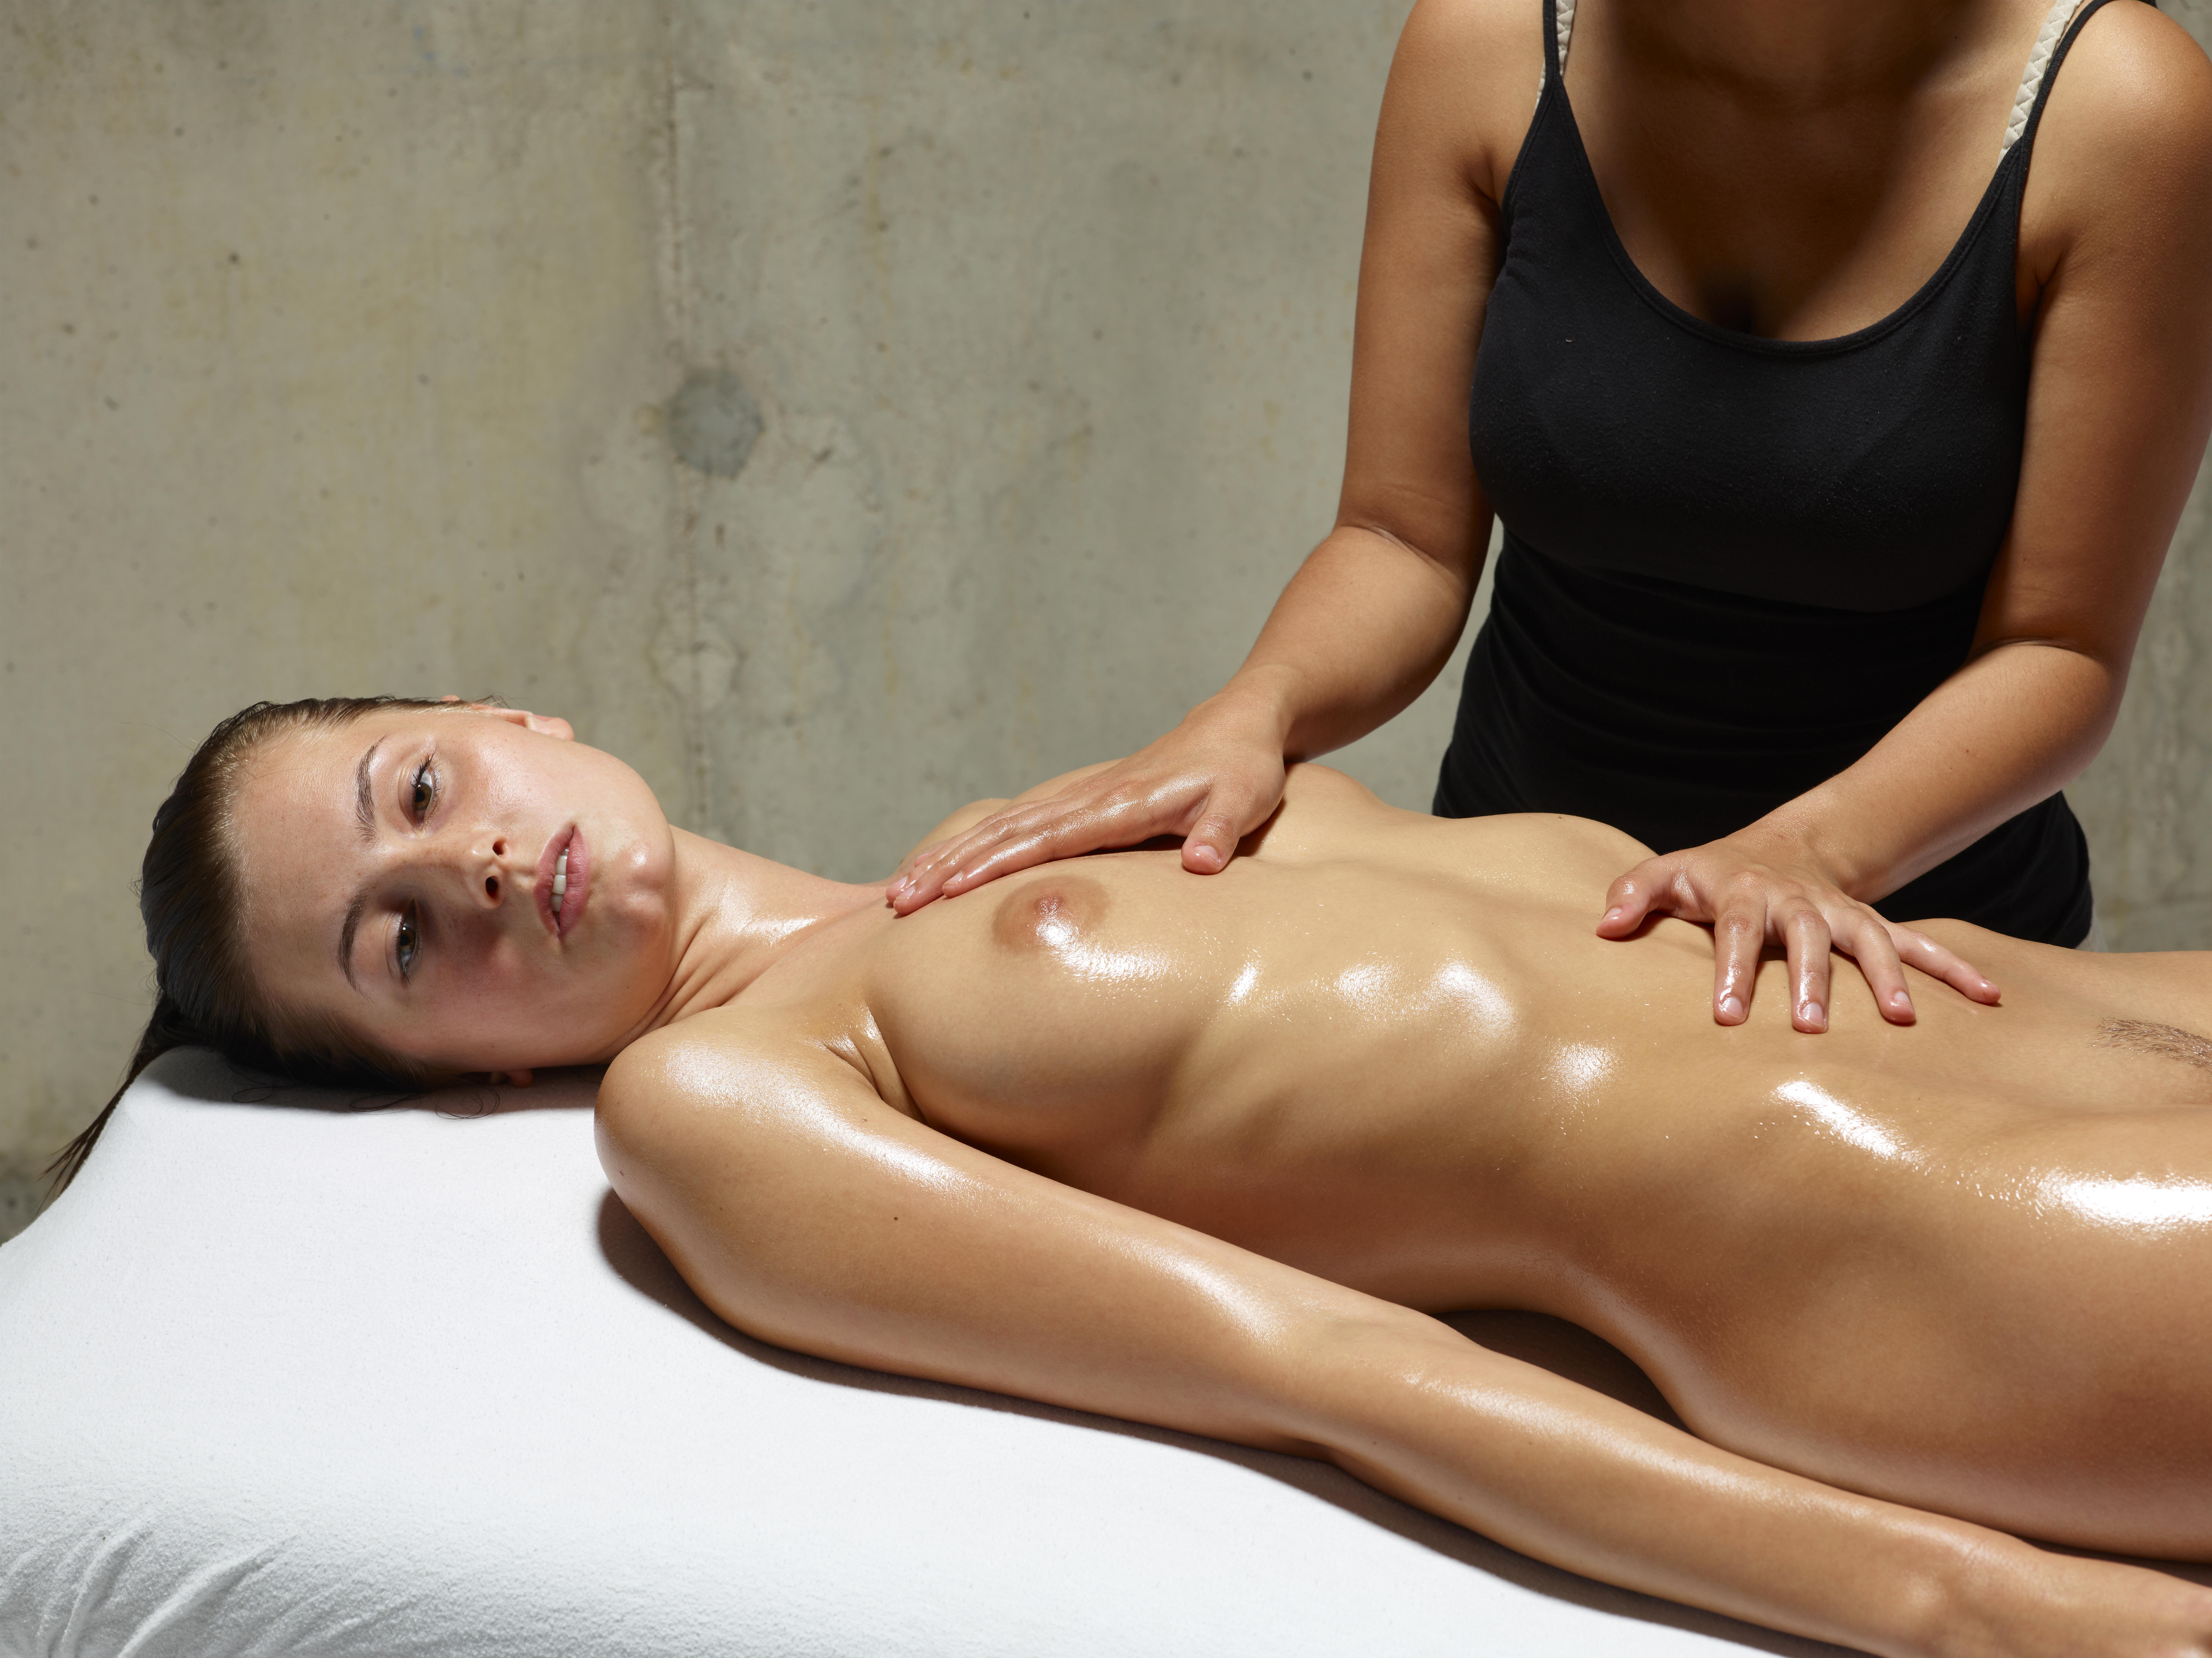 sensual erotic massage famous centrefolds